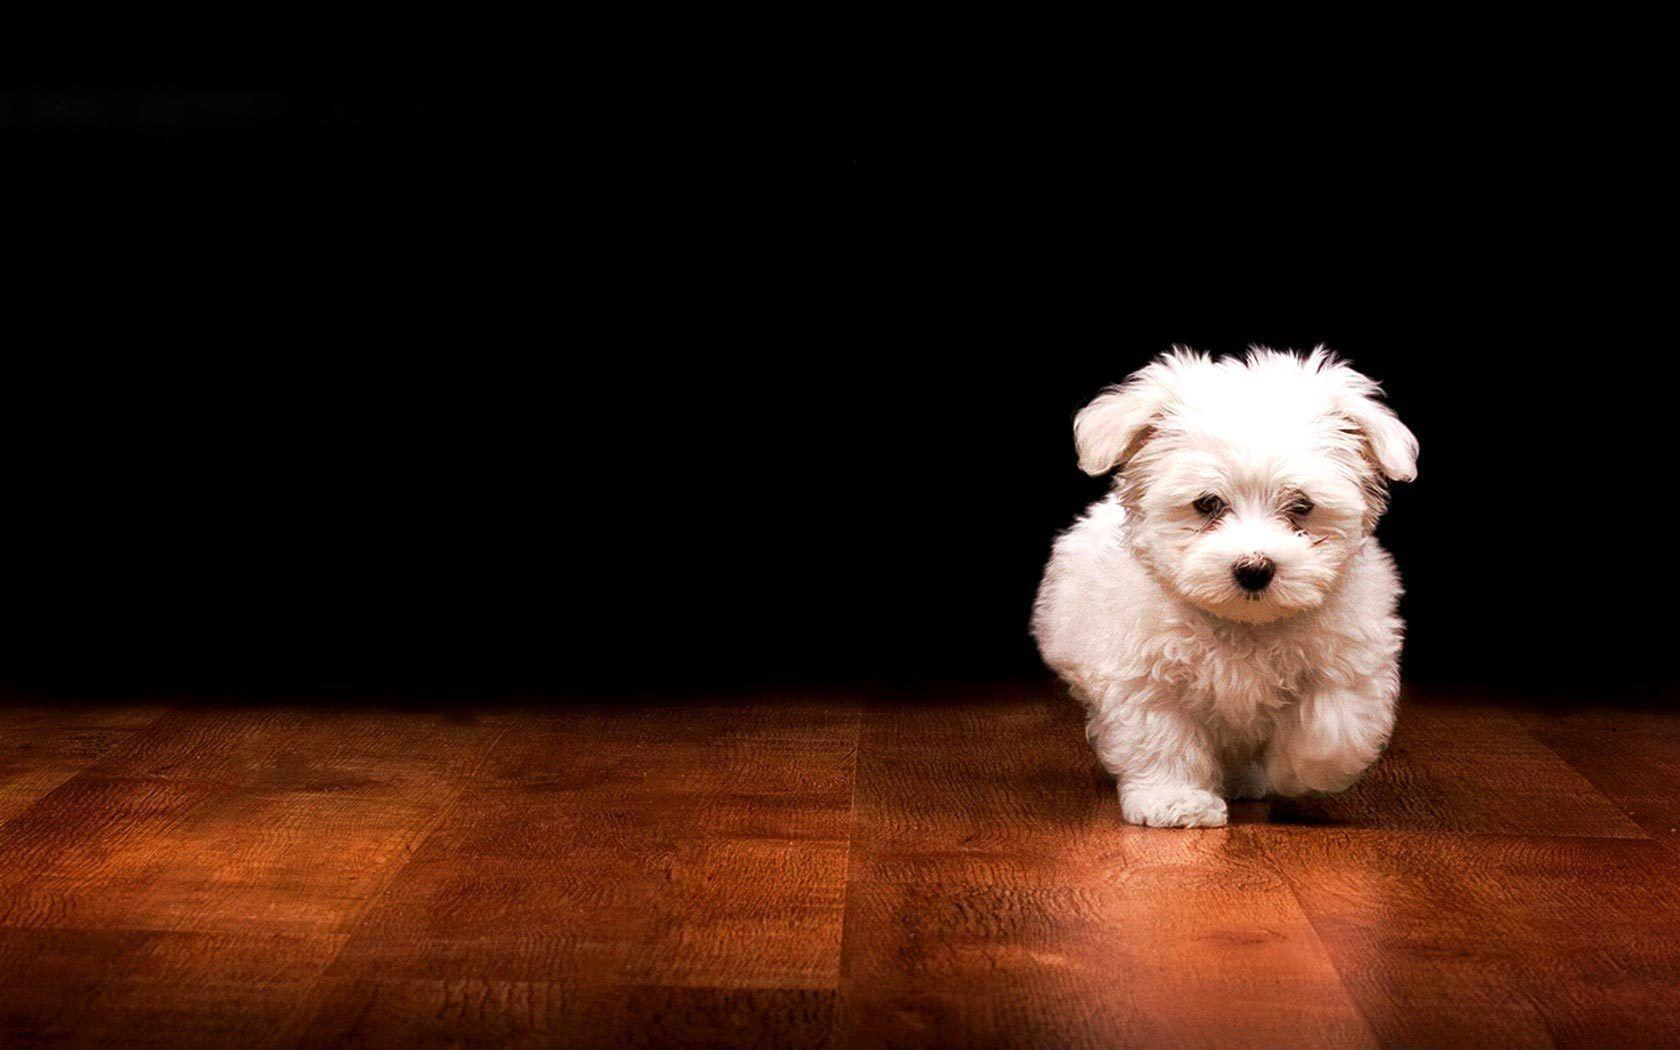 Hd Puppies Wallpapers